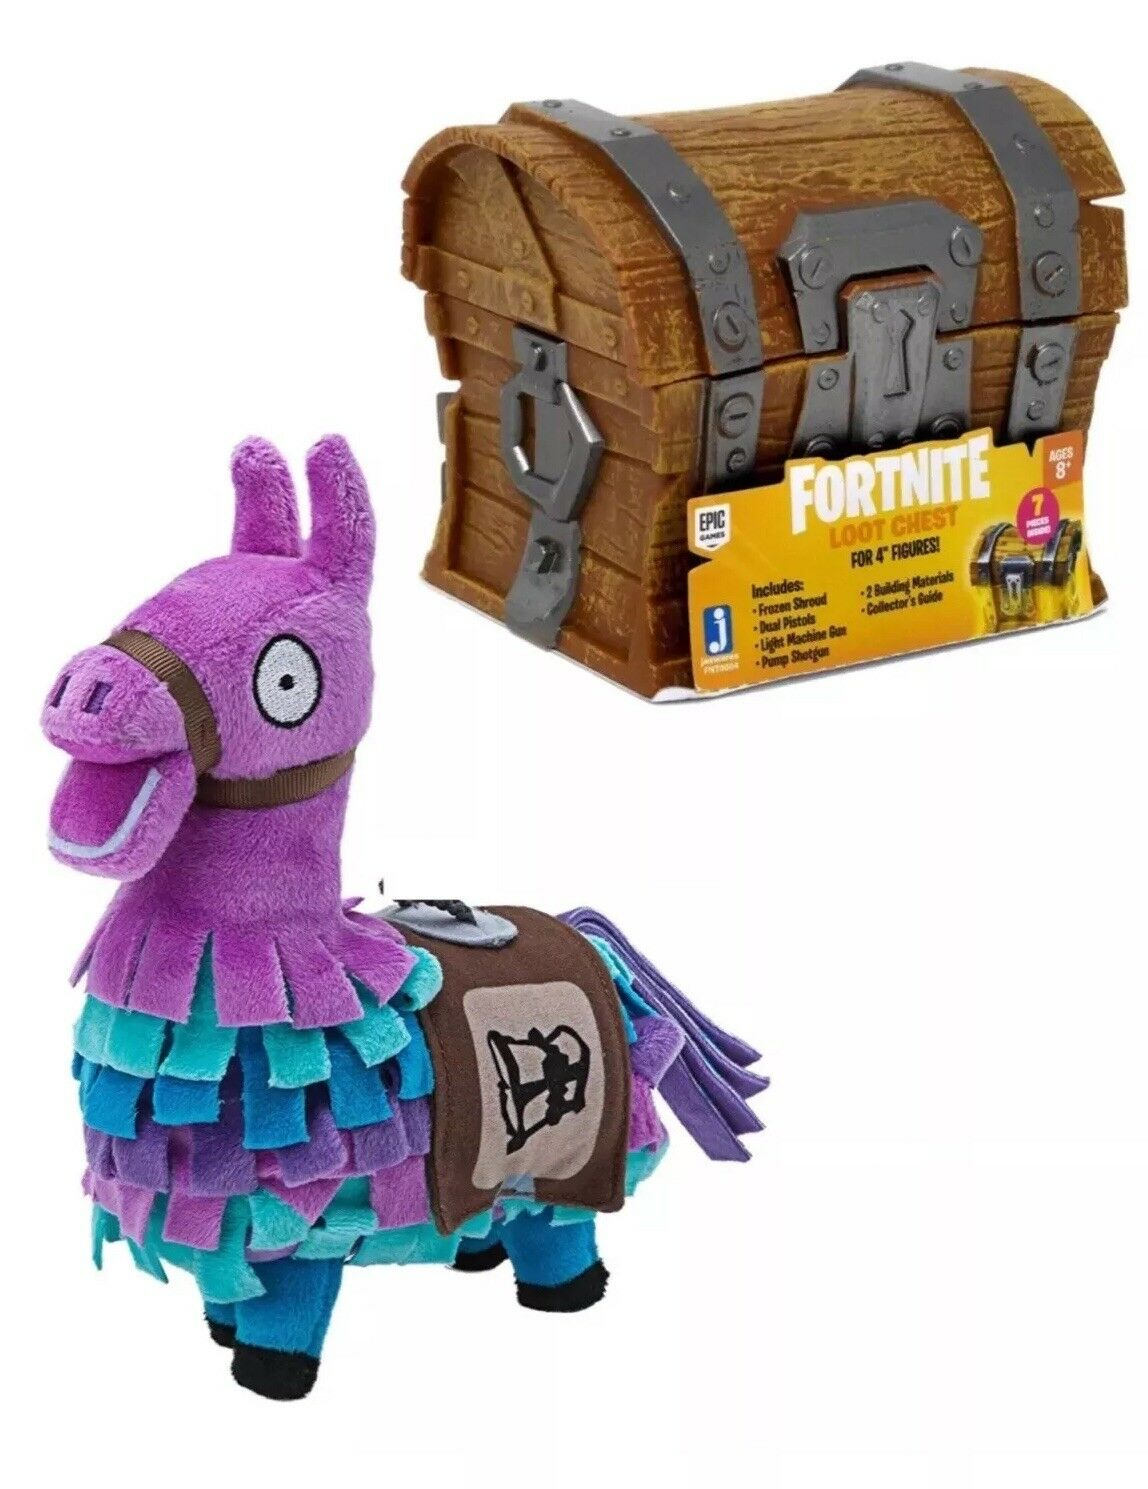 Fortnite Loot Llama 8  Plush And Loot Chest Bundle Fast Shipping.